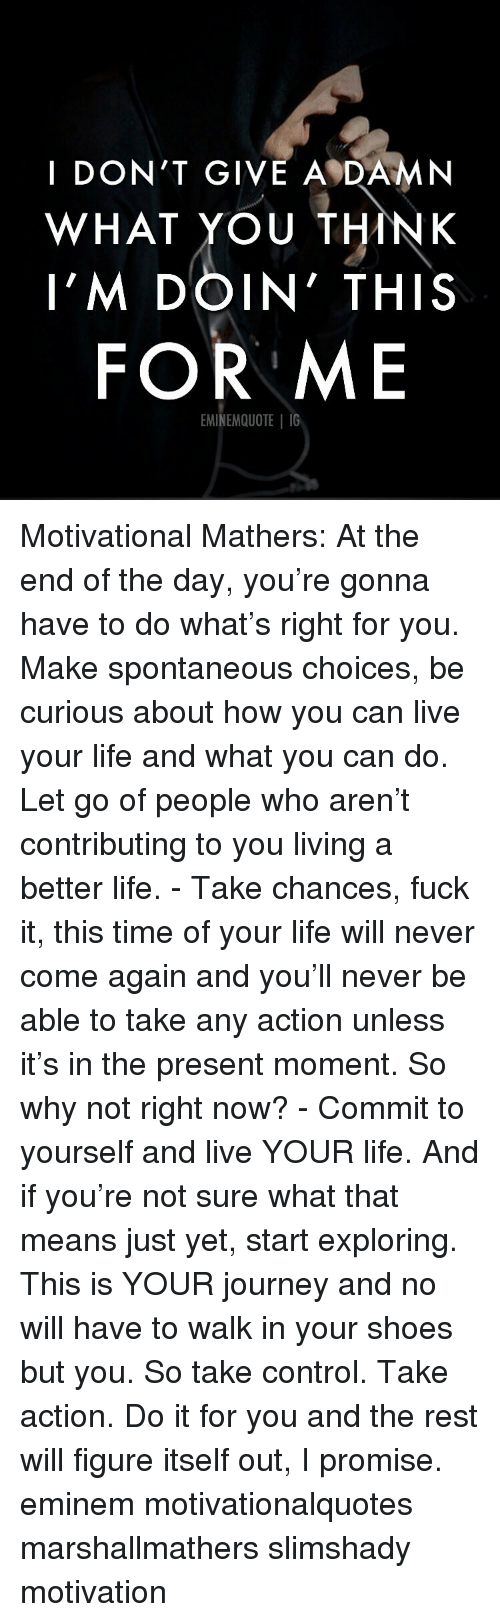 Eminem, Journey, and Life: I DON'T GIVE A DAMN  WHAT YOU THINK  I'M DOIN' THIS  FOR ME  EMINEMQUOTE IG Motivational Mathers: At the end of the day, you're gonna have to do what's right for you. Make spontaneous choices, be curious about how you can live your life and what you can do. Let go of people who aren't contributing to you living a better life. - Take chances, fuck it, this time of your life will never come again and you'll never be able to take any action unless it's in the present moment. So why not right now? - Commit to yourself and live YOUR life. And if you're not sure what that means just yet, start exploring. This is YOUR journey and no will have to walk in your shoes but you. So take control. Take action. Do it for you and the rest will figure itself out, I promise. eminem motivationalquotes marshallmathers slimshady motivation